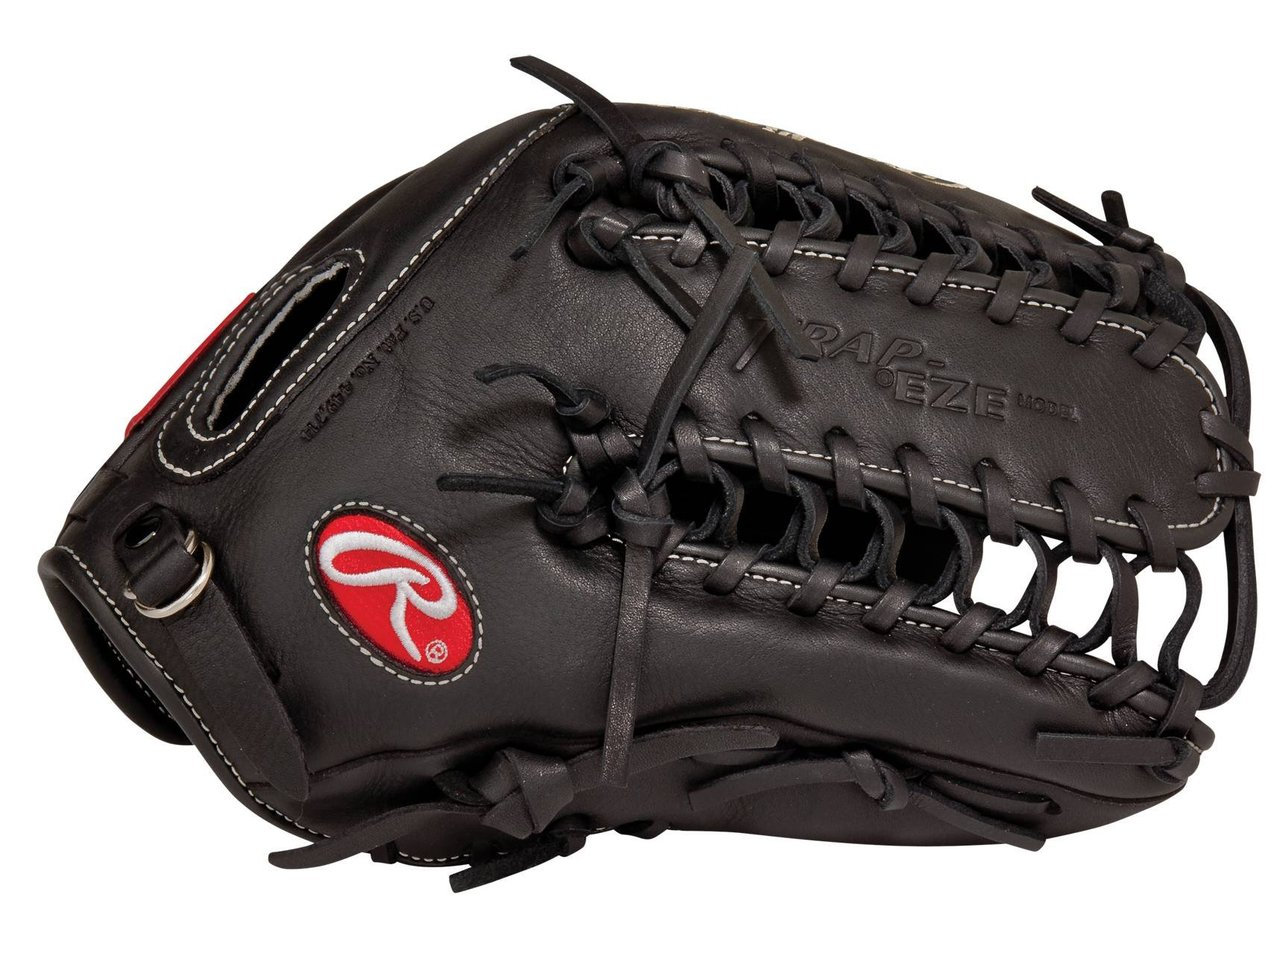 rawlings-gold-glove-gamer-12-75-inch-baseball-glove-left-handed-throw G601B-Left Handed Throw Rawlings 083321635892 The G601B Rawlings Gold Glove Gamer baseball glove features the Trapeze